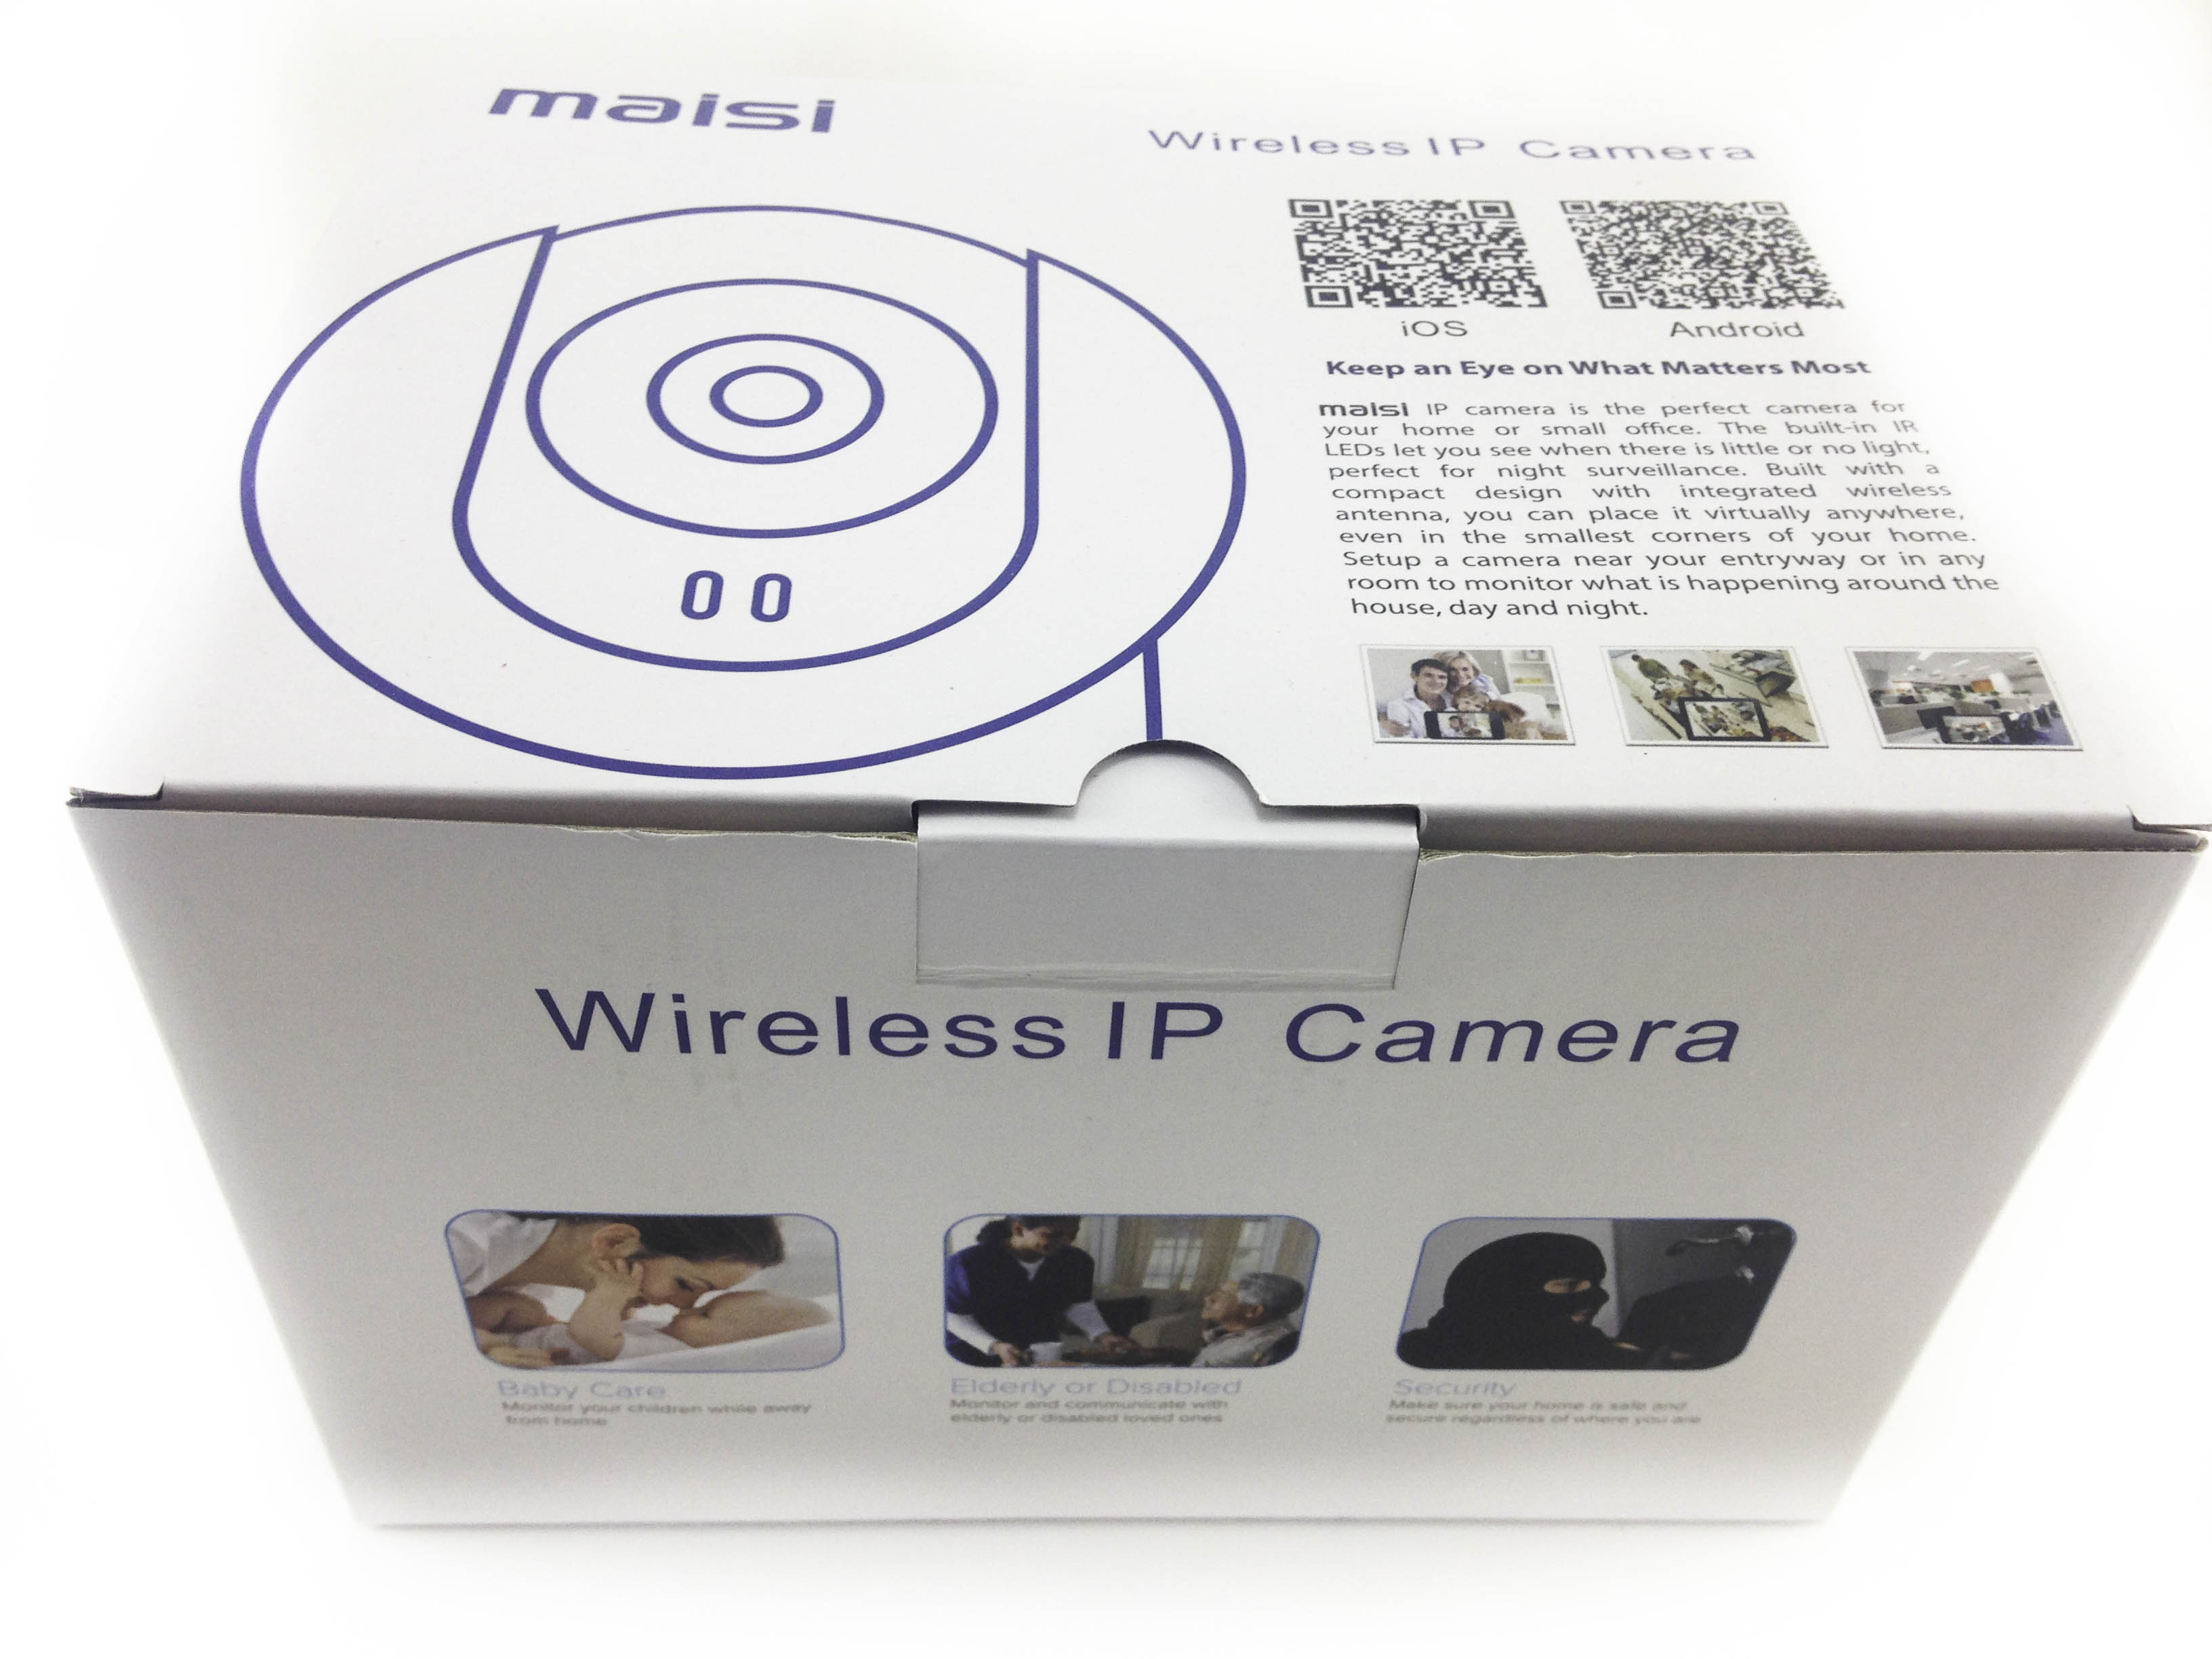 Maisi Wireless Security IP Camera | My Helpful Hints | Honest Reviews